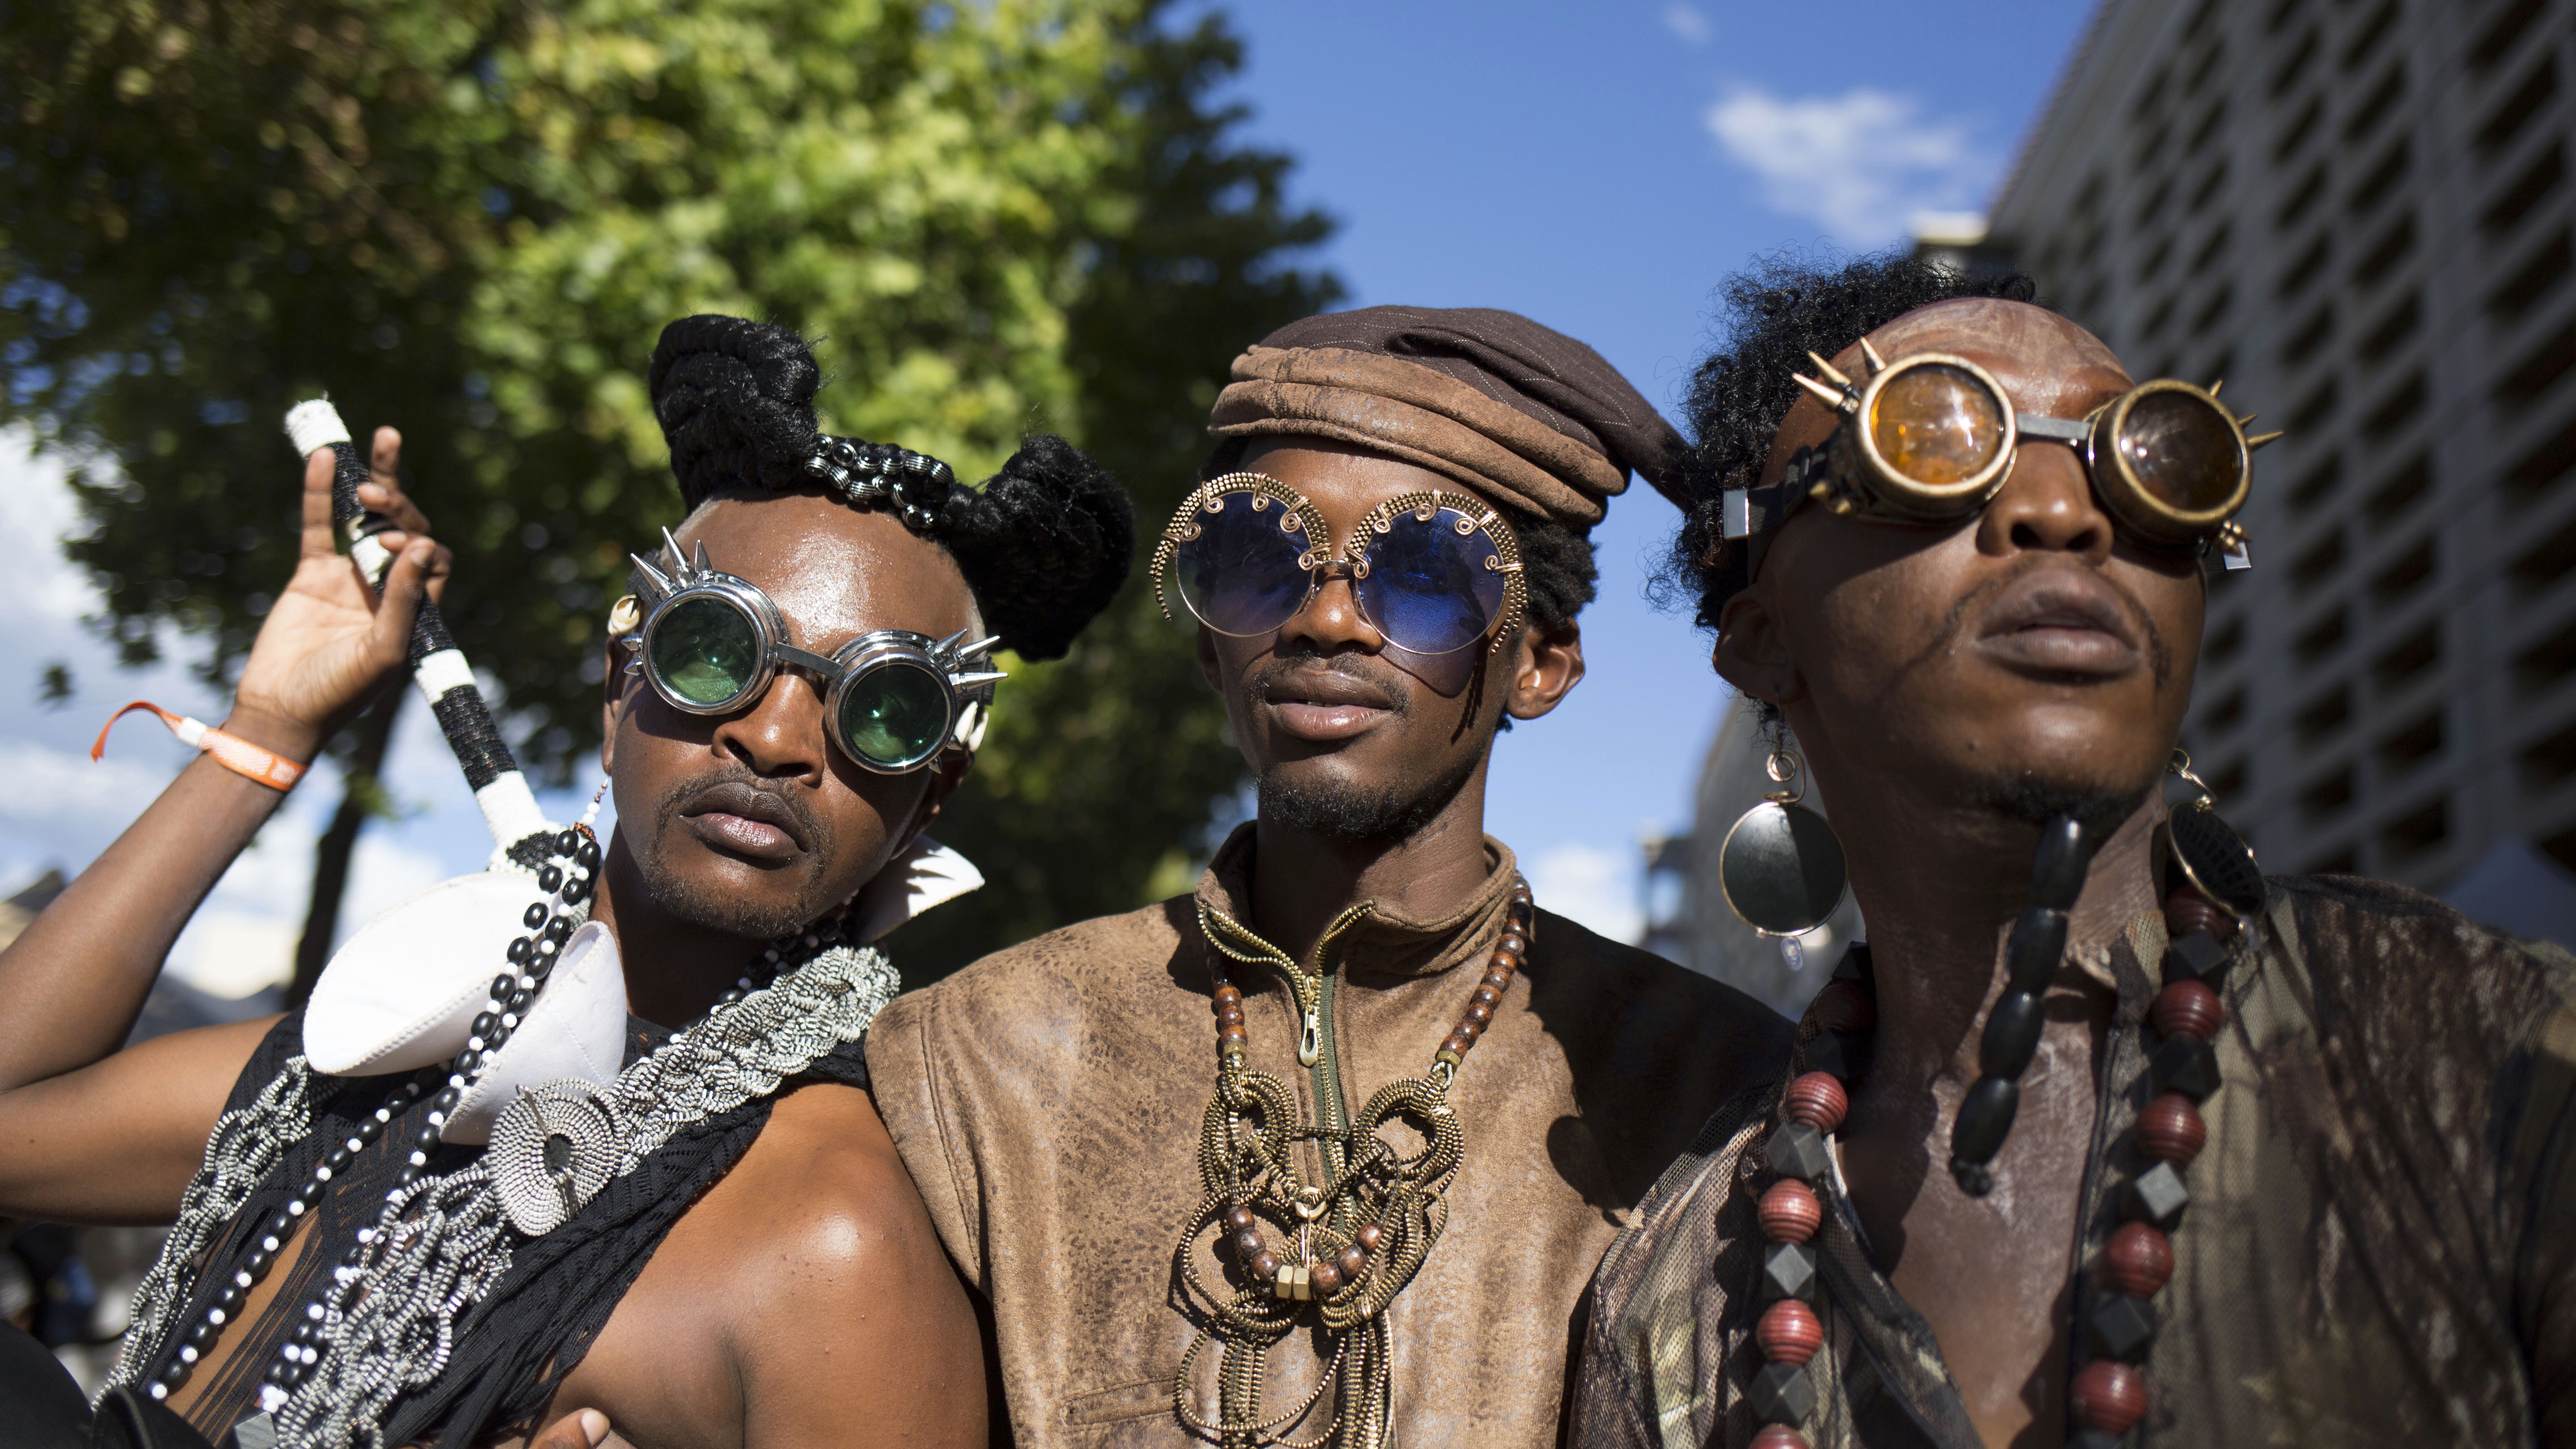 epa06411611 Loebogang Molefe (L), Jack Radebe (C) and Obza Jobesei (R) pose for a portrait during the AFROPUNK Festival held at Constitution Hill in Johannesburg, South Africa, 31 December 2017. The festival in its 14th year stops for the first time in Johannesburg after playing in cities such as Atlanta, New York, Paris and London. The festival is renowned the world over and features creativity and style with top live acts mixed with civic minded aspects.  EPA-EFE/CORNELL TUKIRI